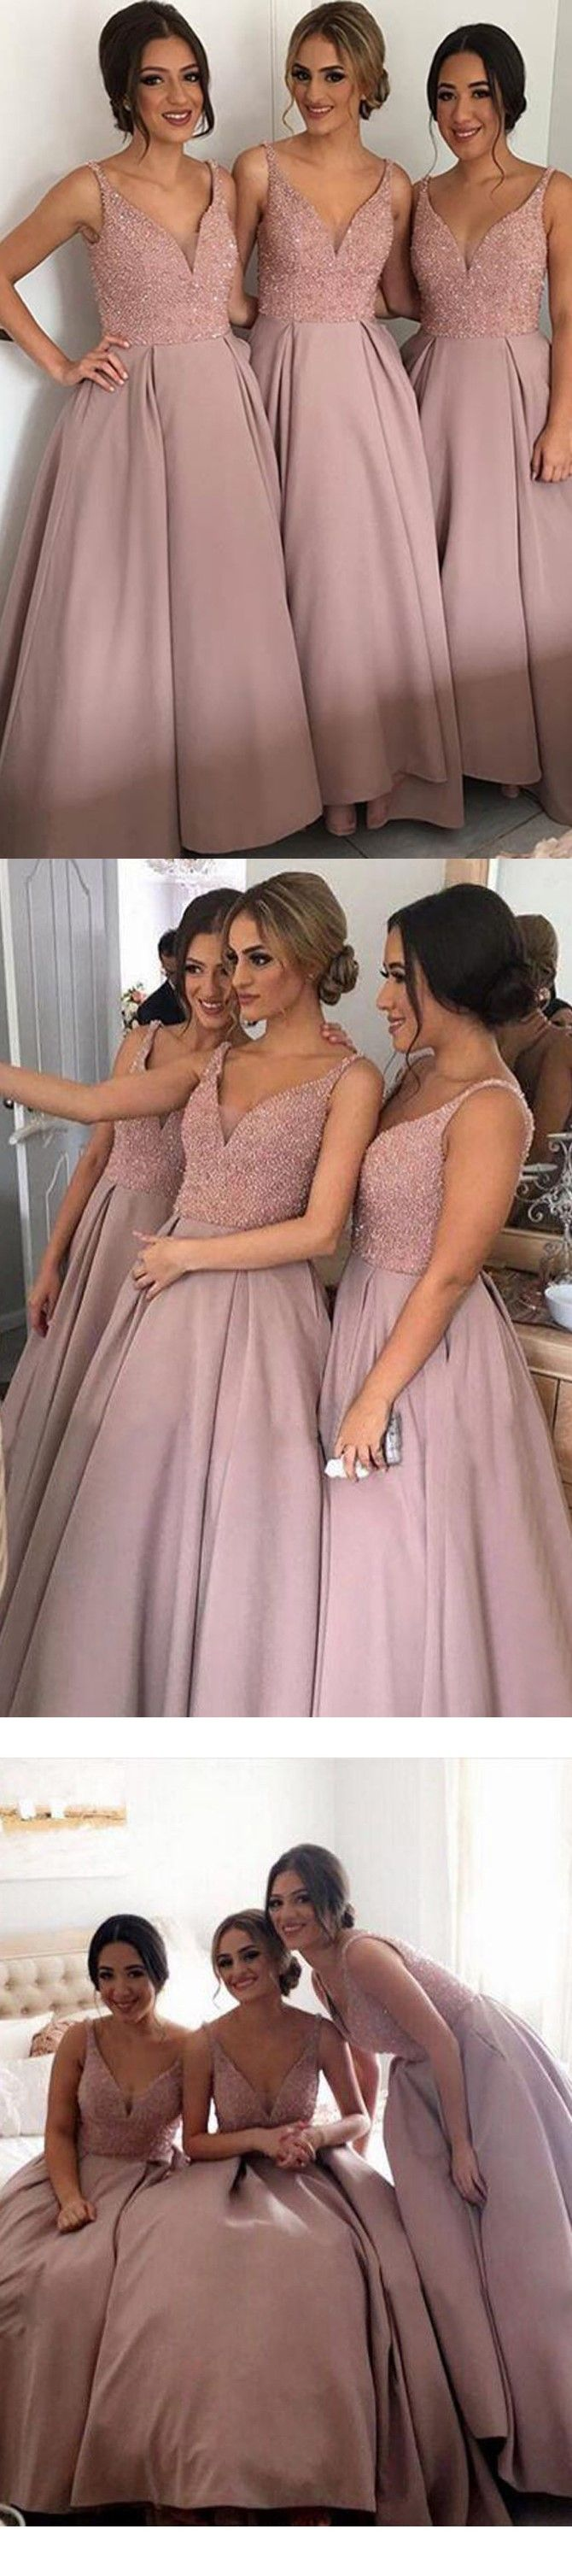 Best 25 blush bridesmaid dresses long ideas on pinterest pink bridesmaid dressbridesmaid dresseslong bridesmaid dressblush bridesmaid dresscheap bridesmaid ombrellifo Image collections